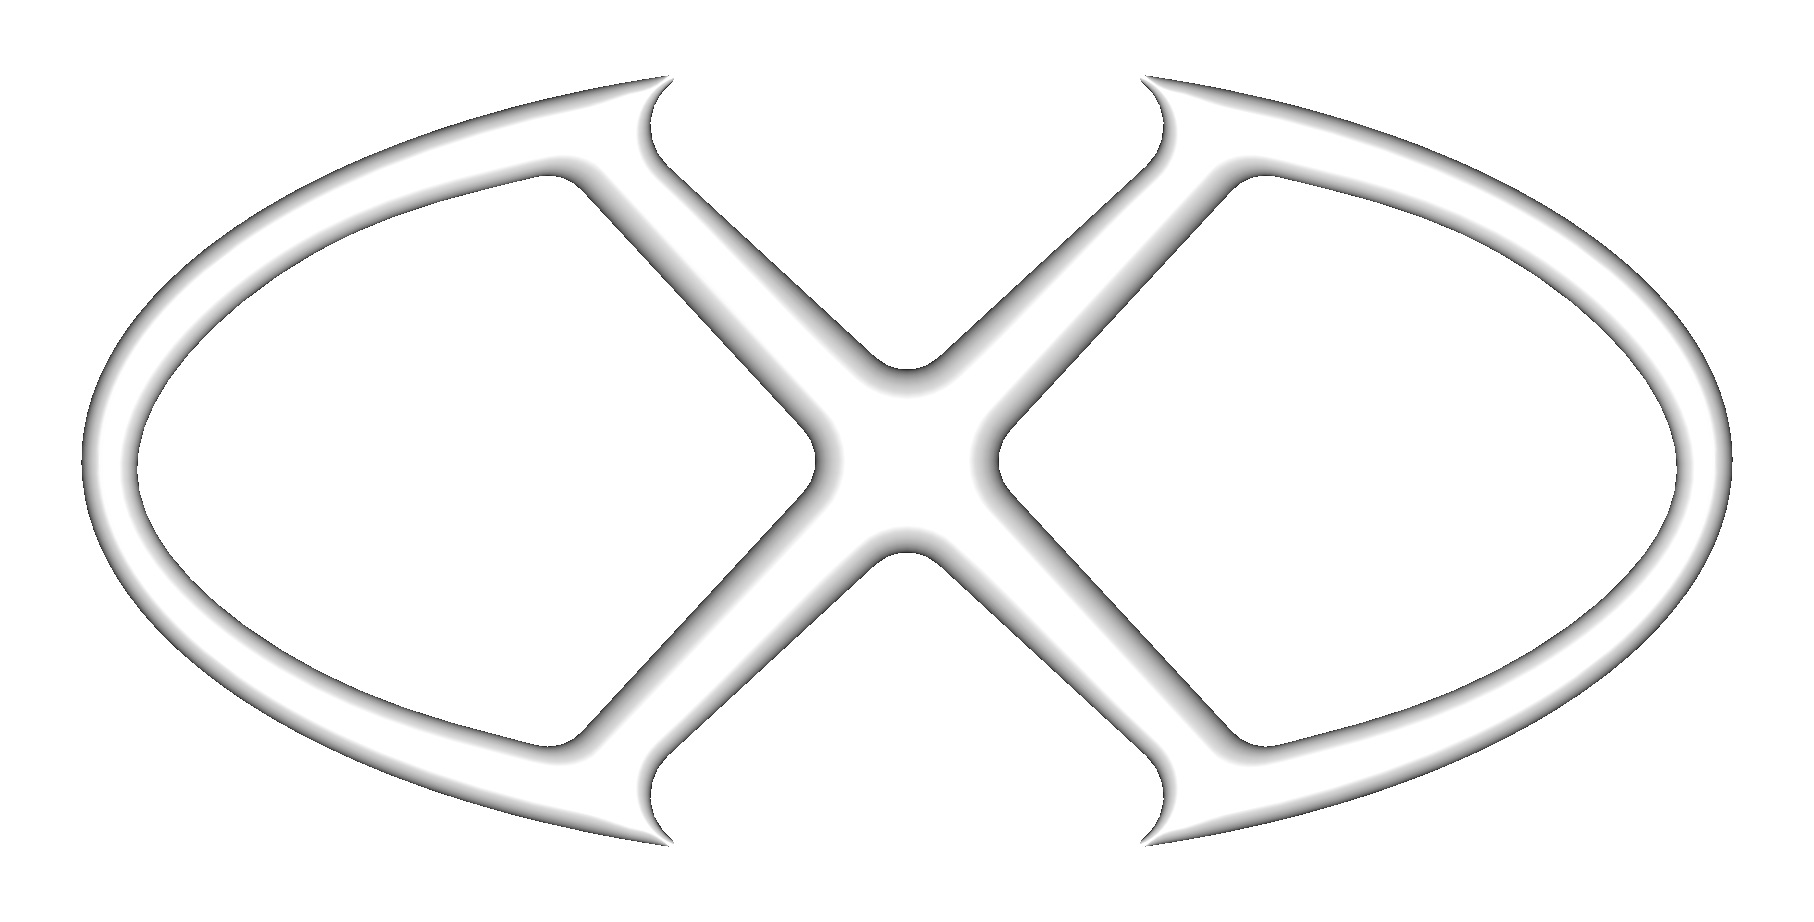 TExx chassis to Manual Transmission Cross Member (W58, R154)